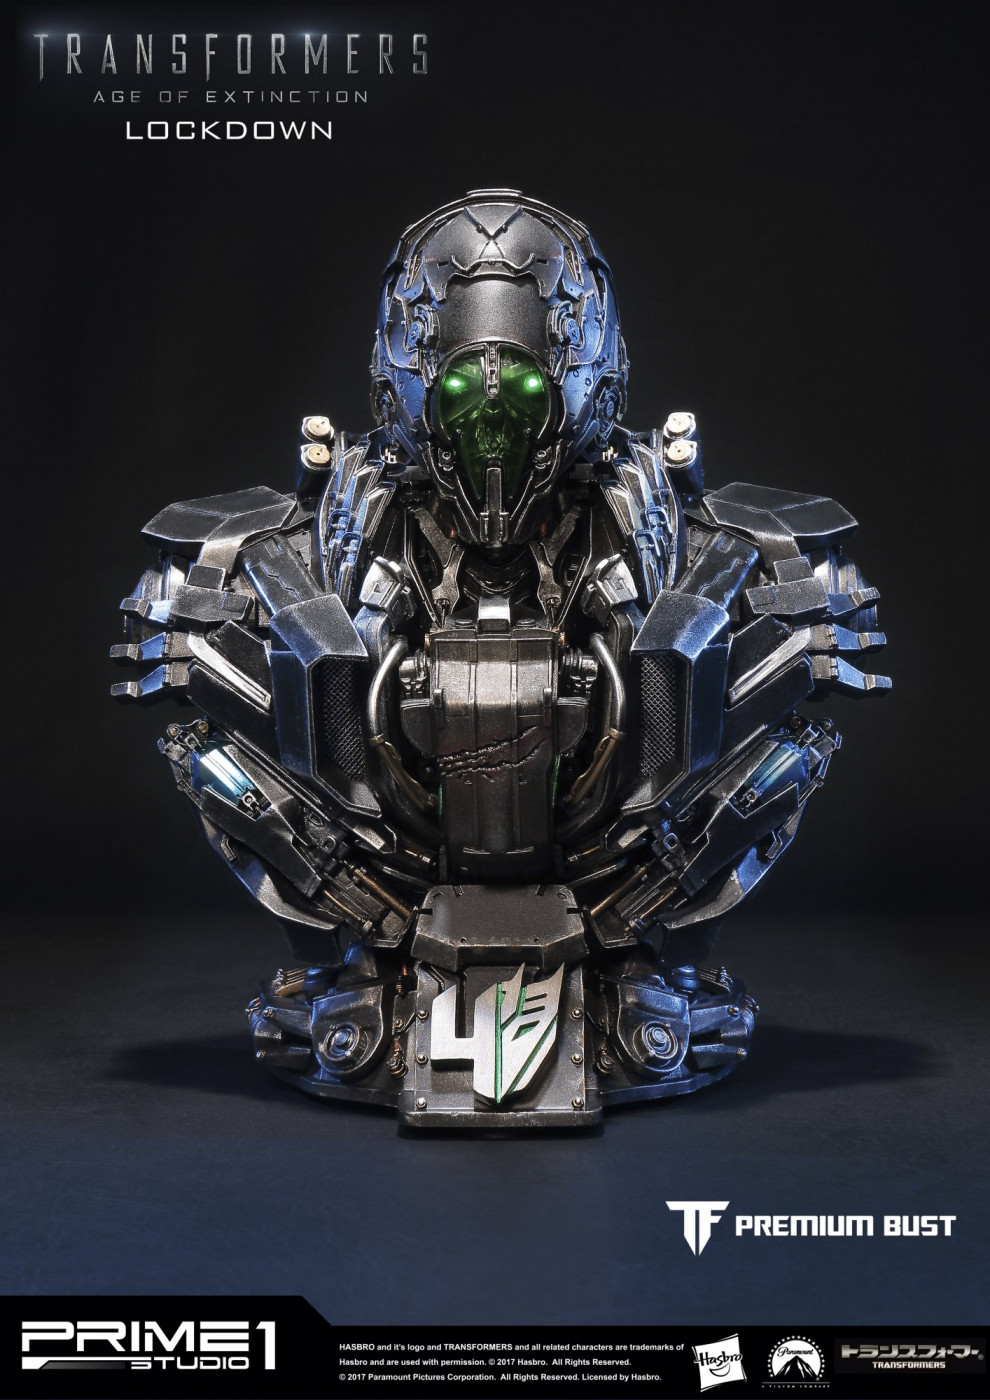 Premium Bust Transformers: Age of Extinction Lockdown